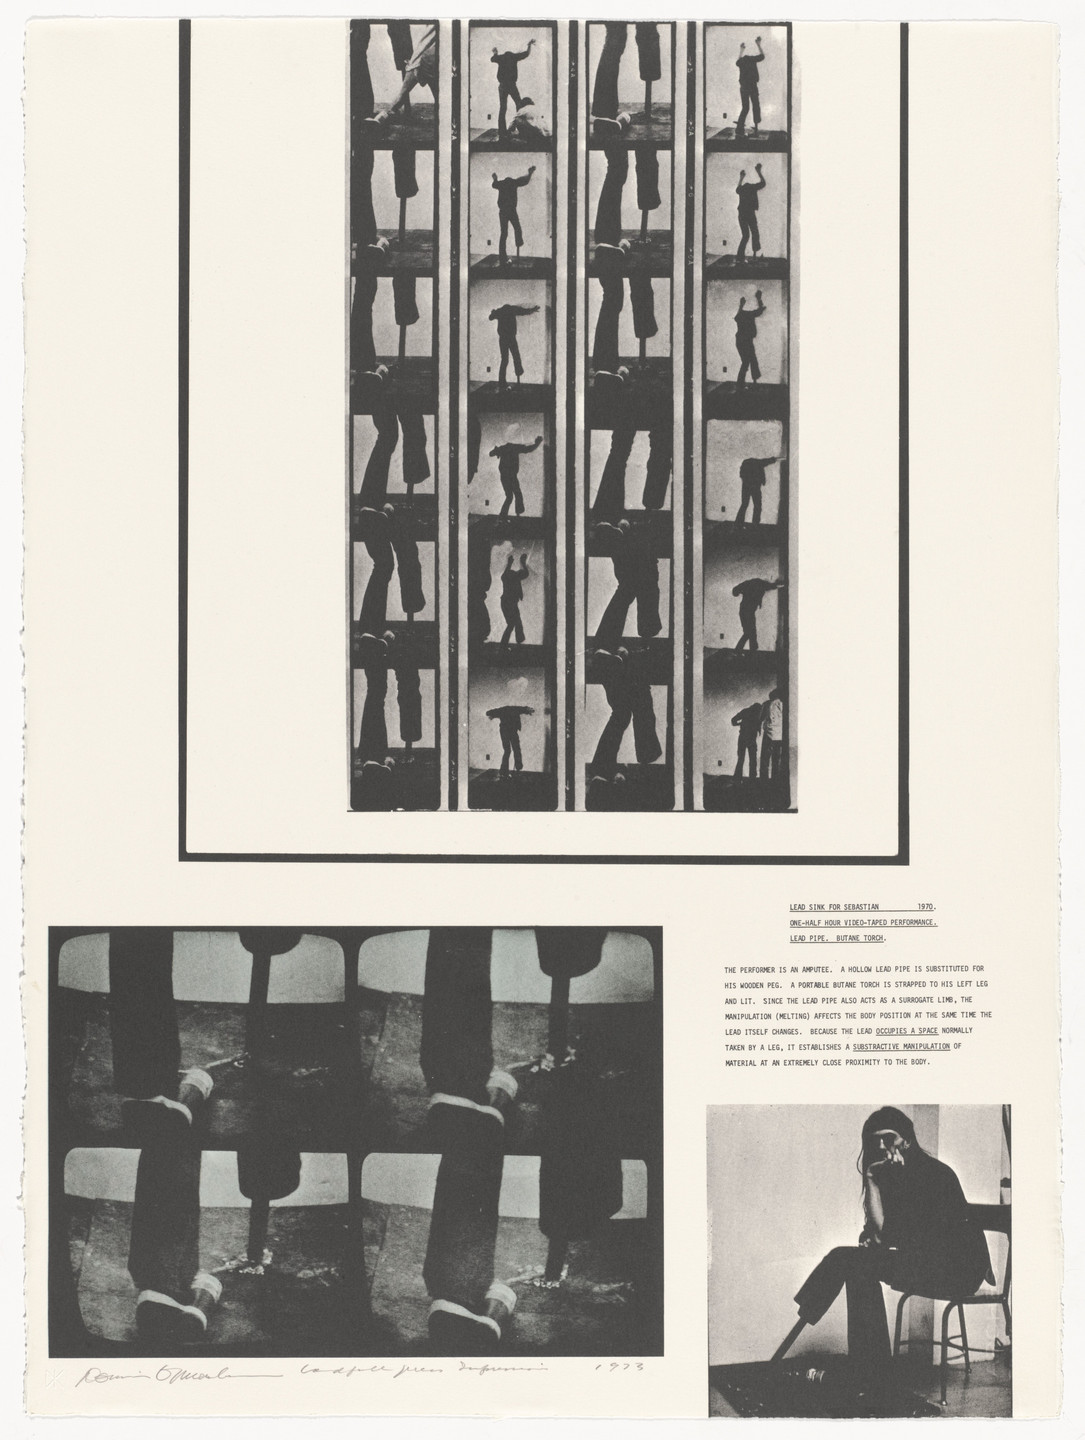 Dennis Oppenheim. Lead Sink For Sebastian. 1970 from Projects by Dennis Oppenheim. 1973